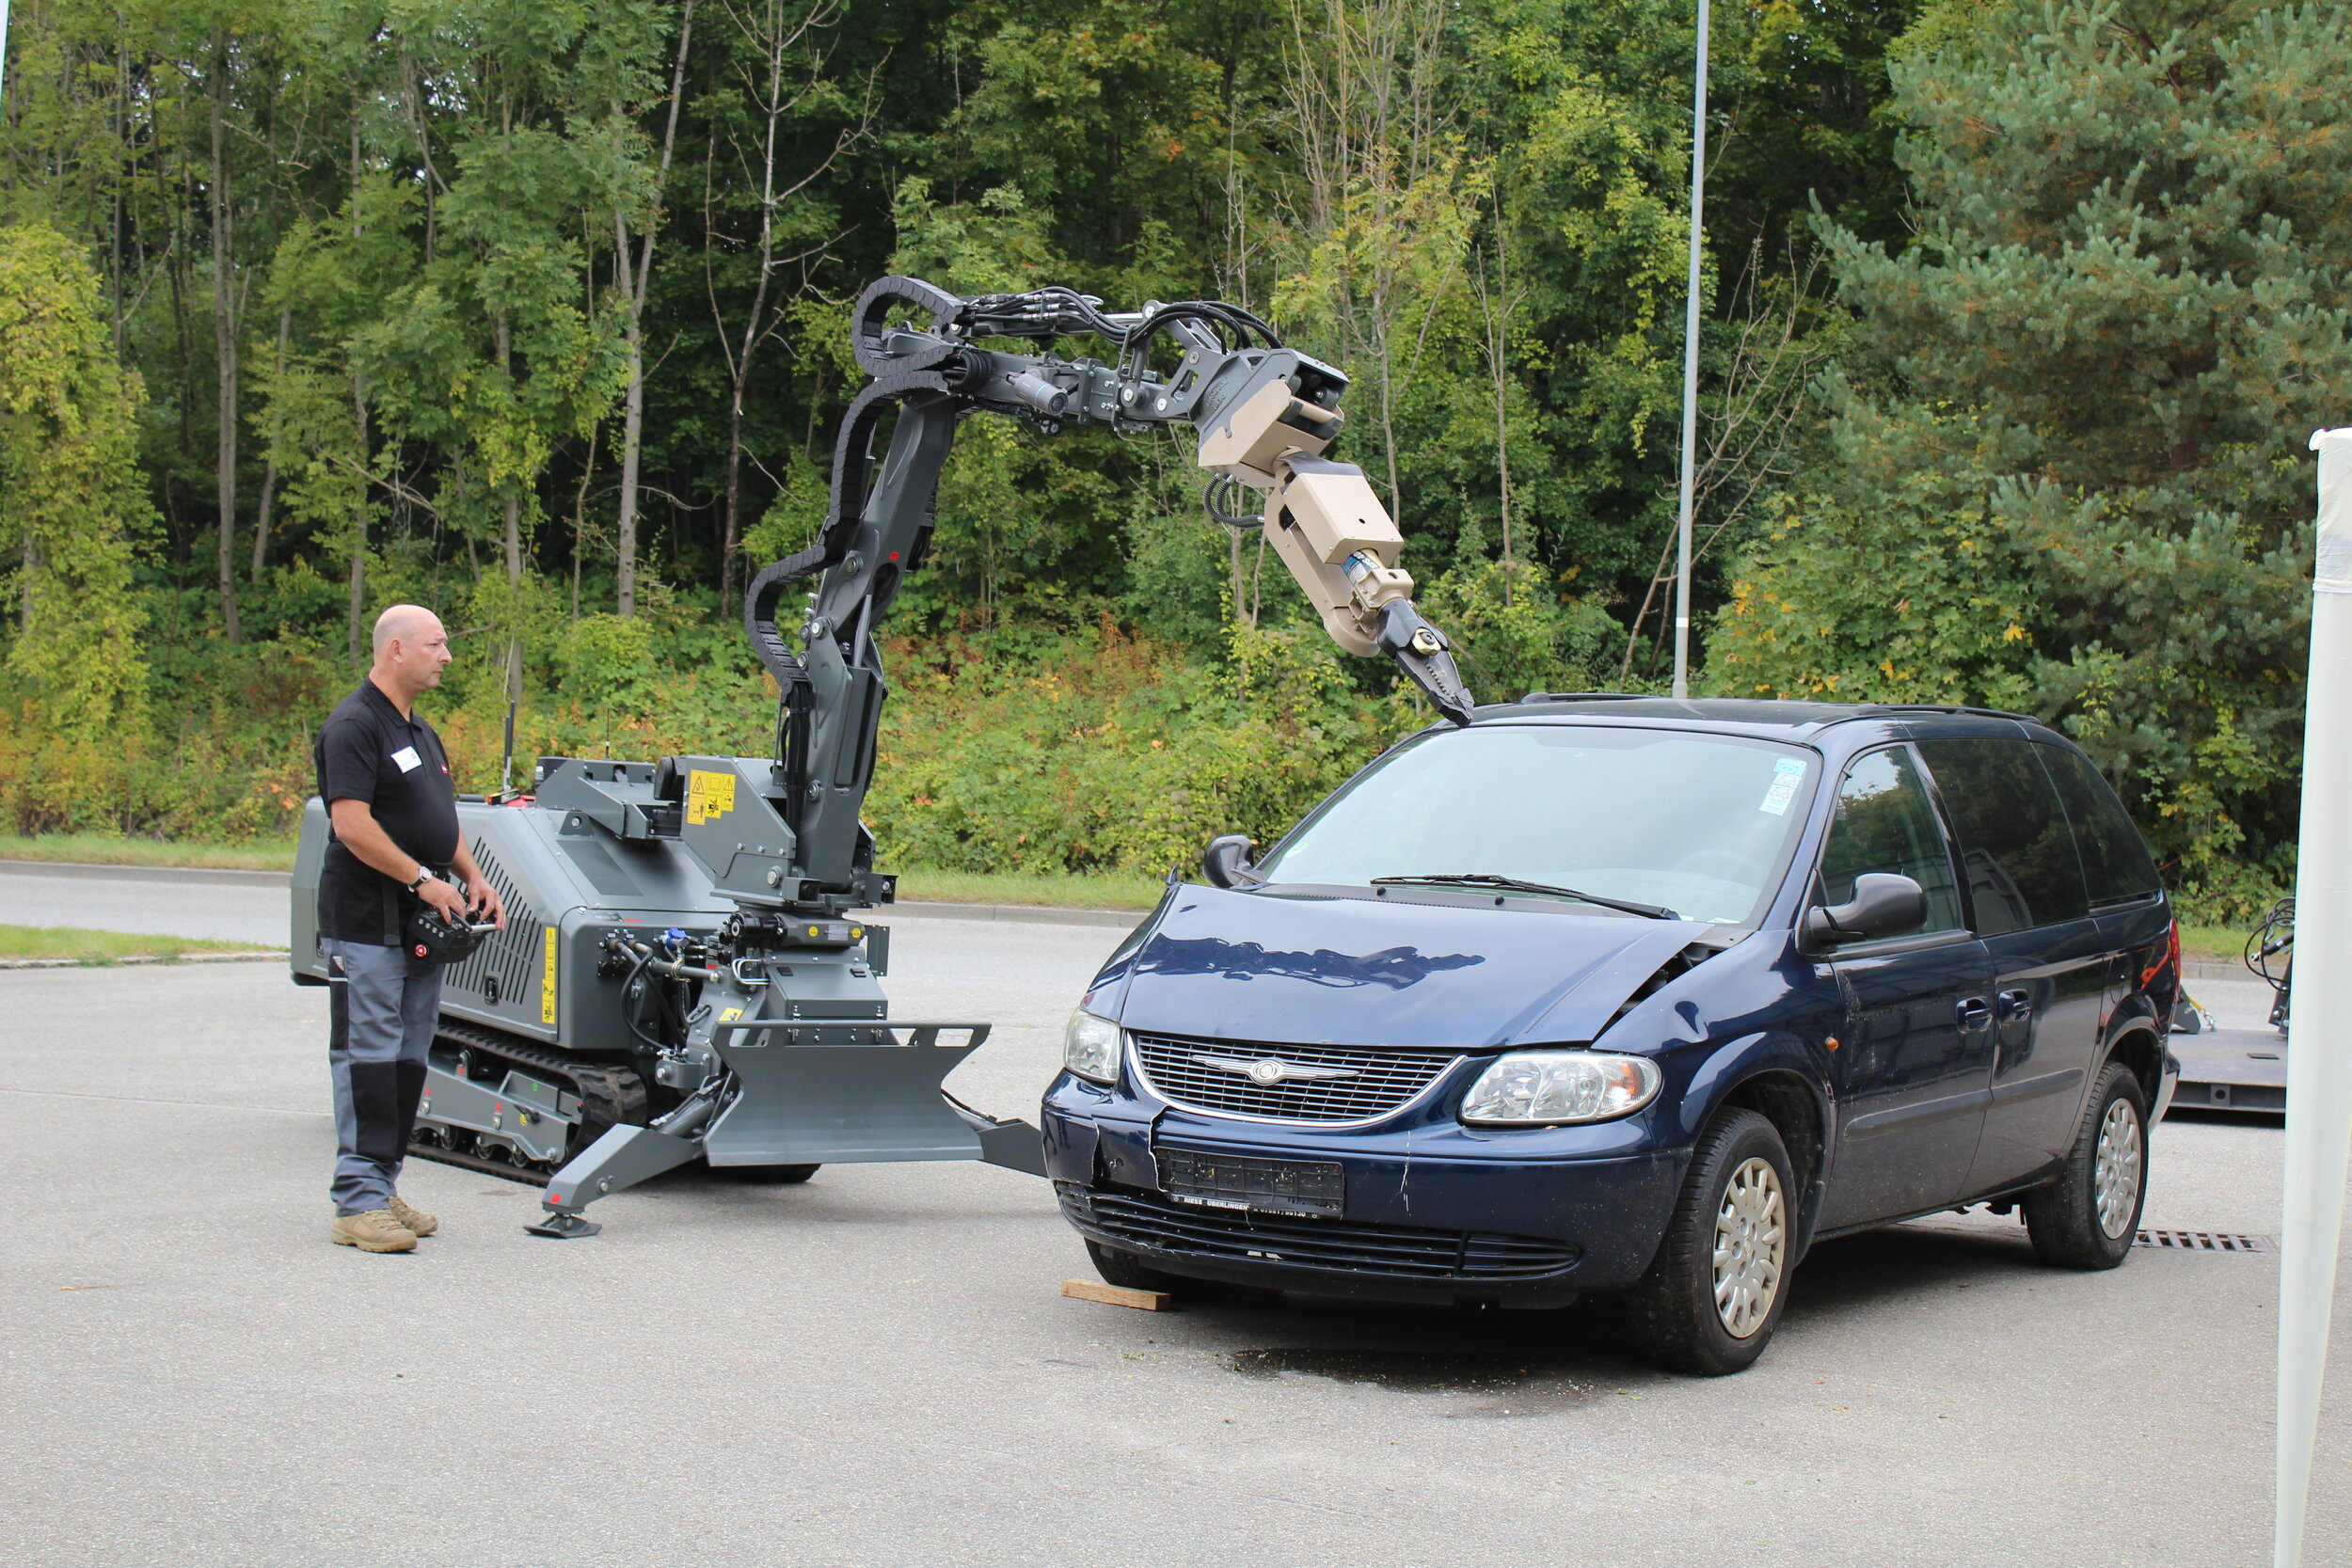 Vehicle borne IED scenario – parked car with suspected IED